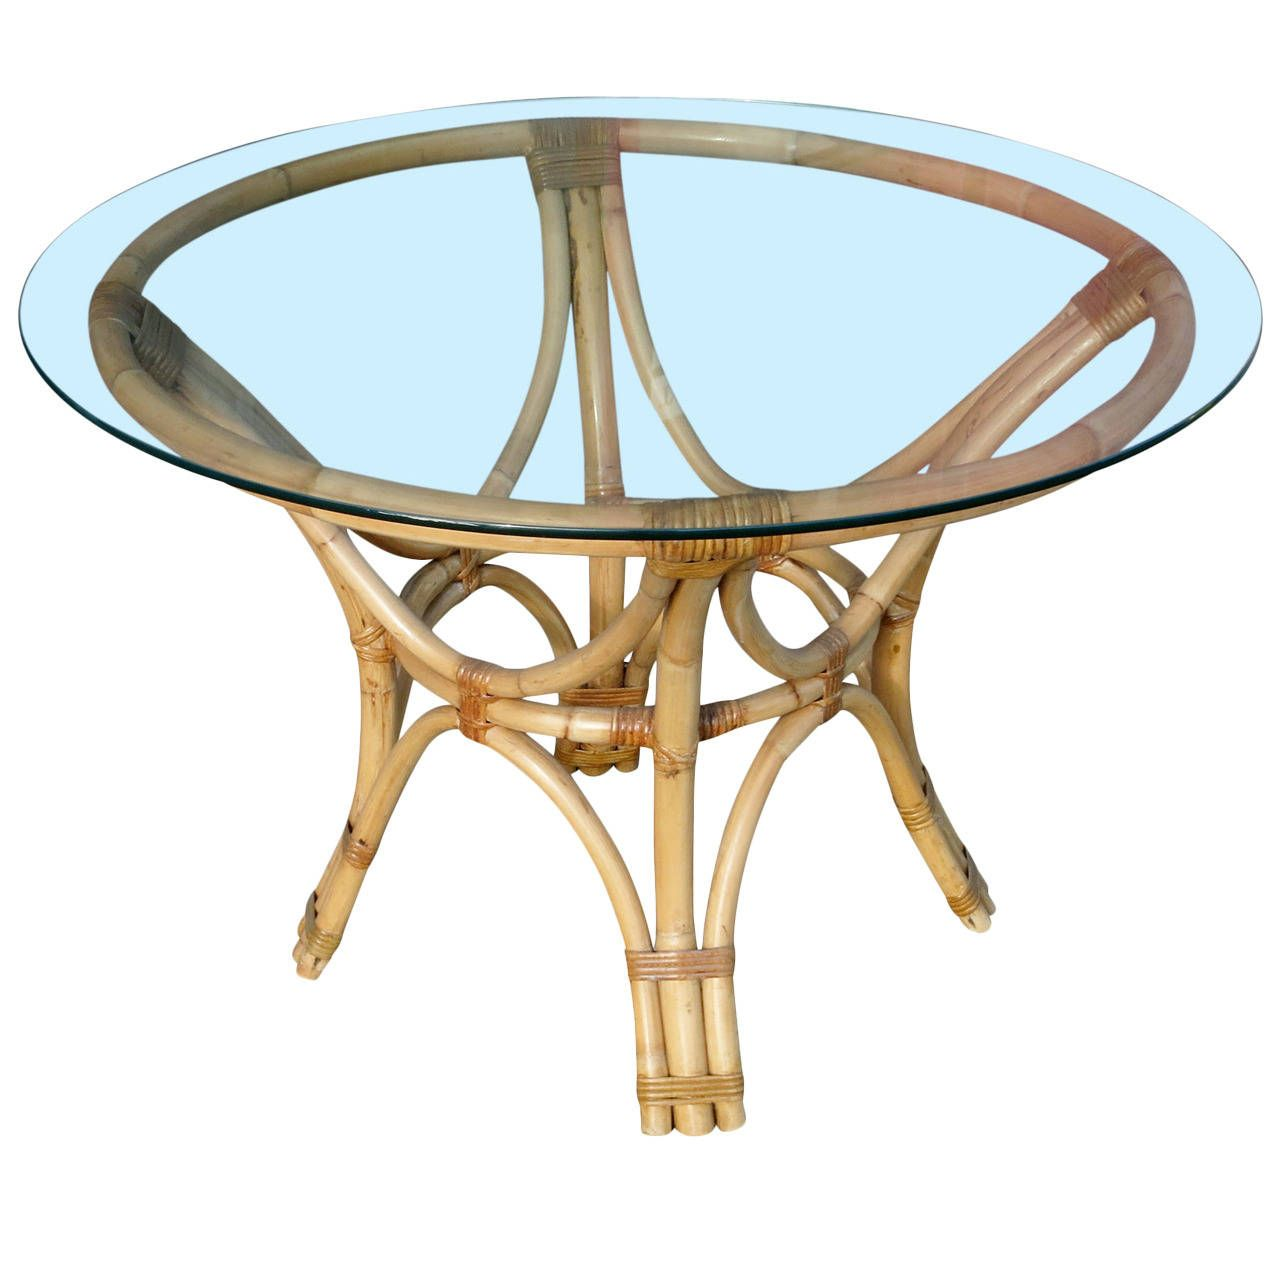 Round Wicker Dining Table: Restored Rattan Bentwood Dining Table With Round Glass Top